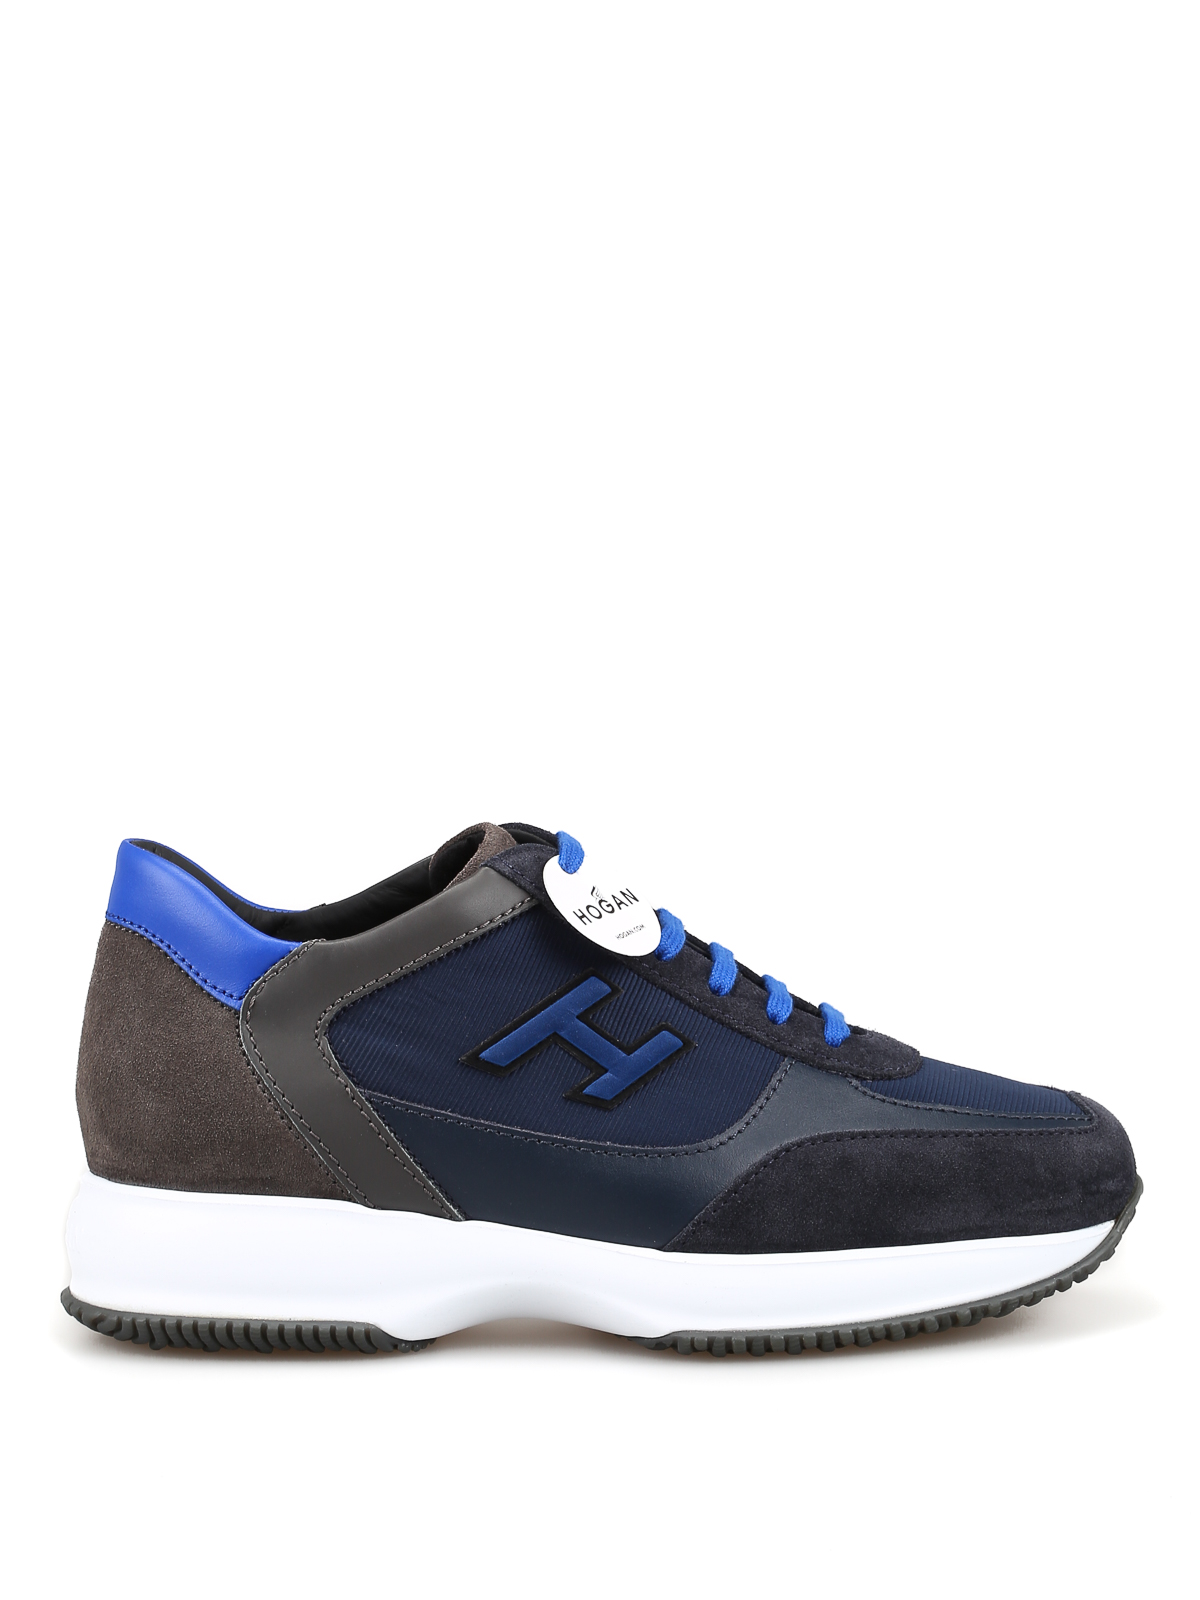 Hogan - New Interactive H Flock blue sneakers - trainers ...